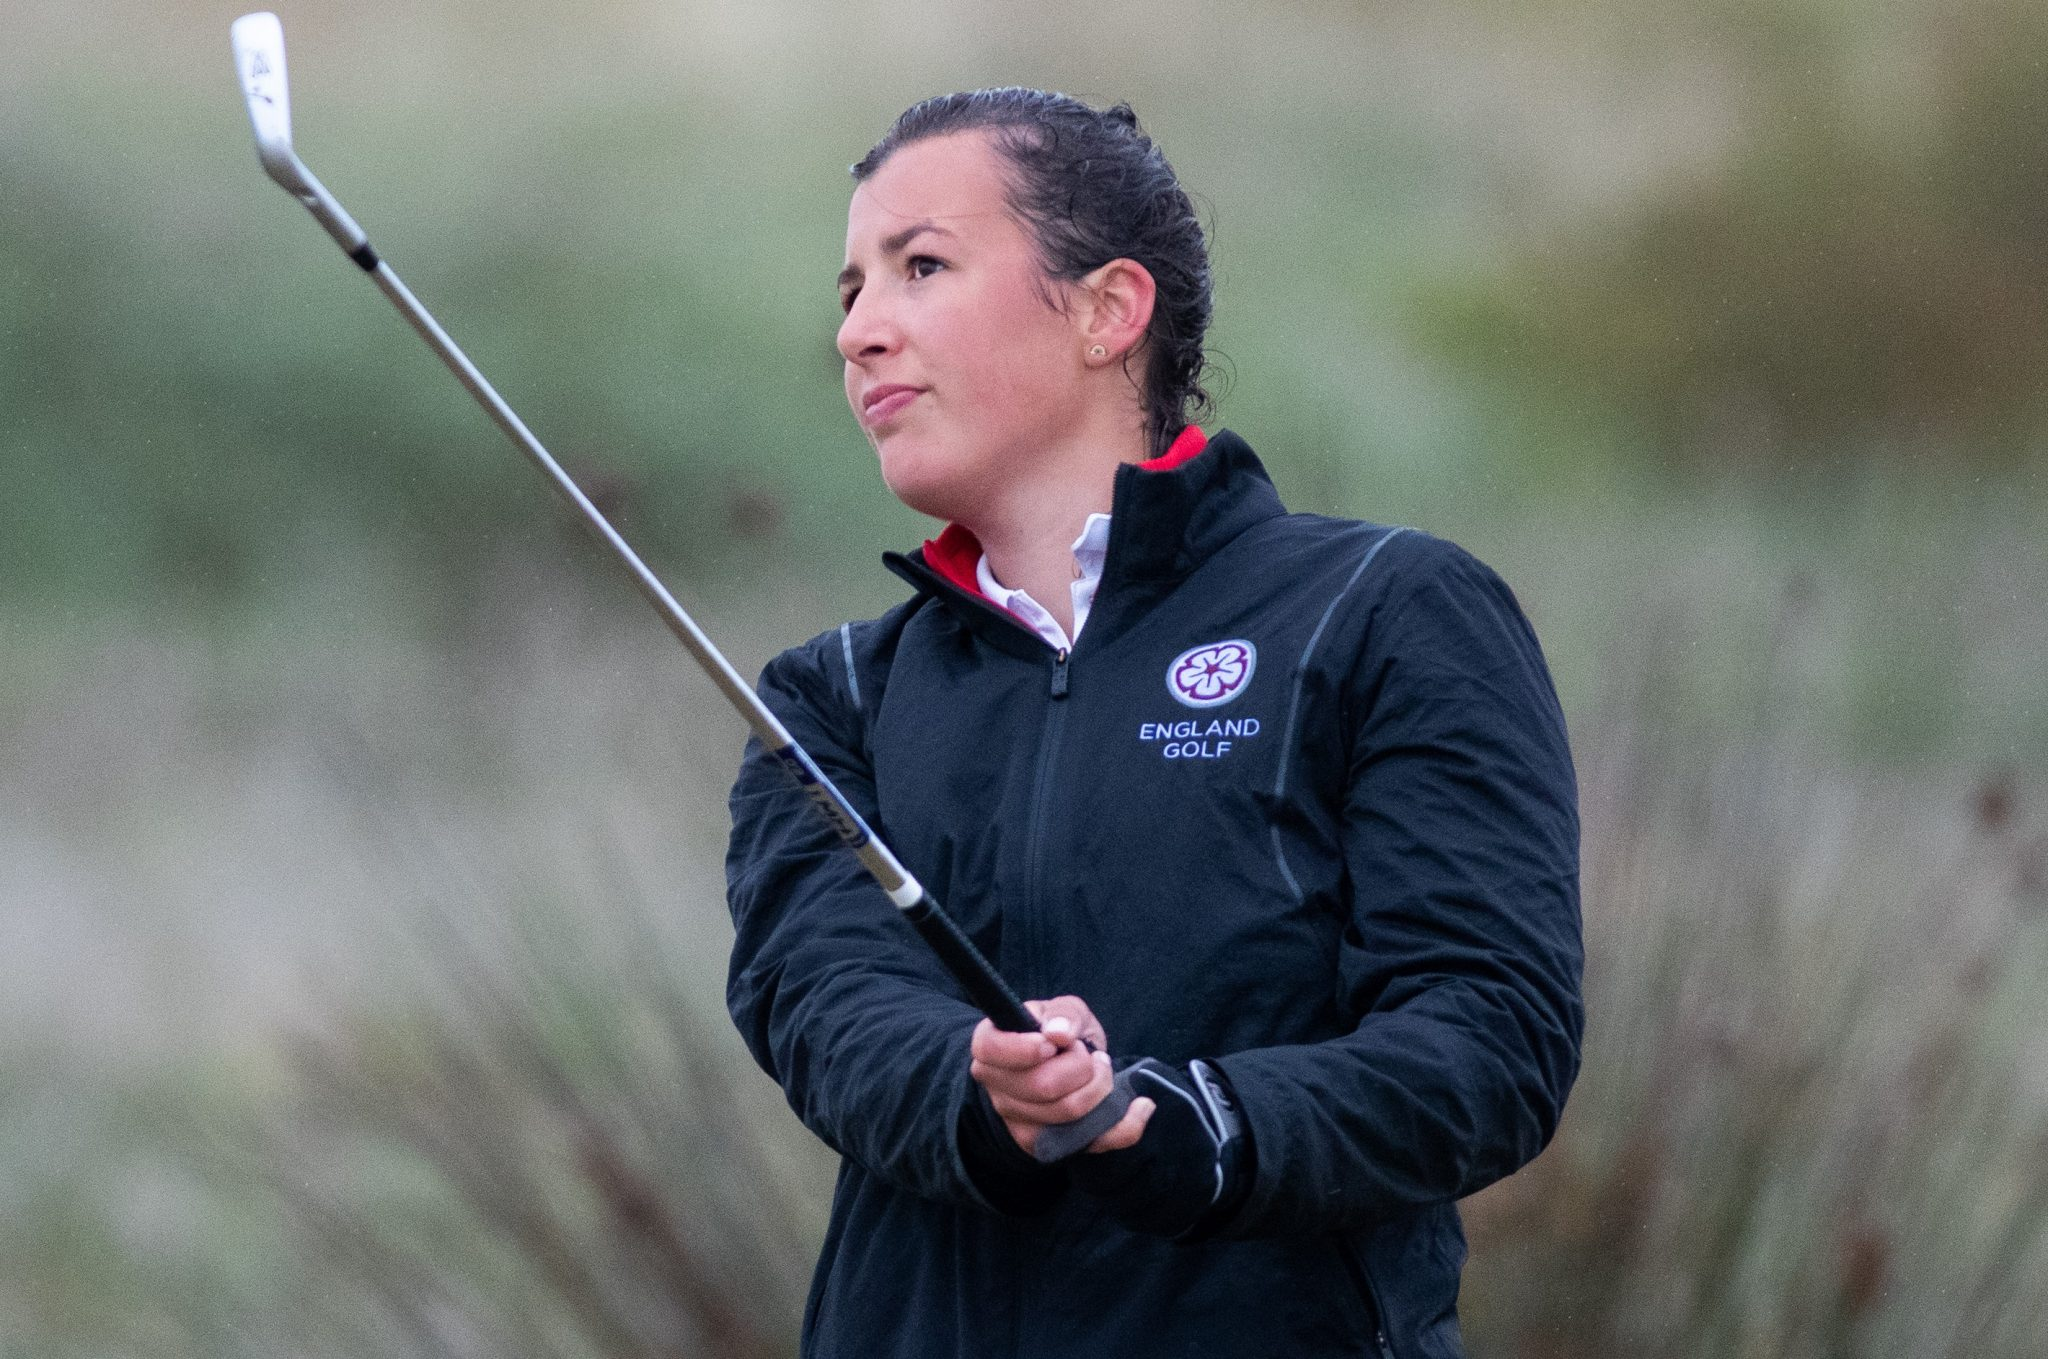 England Golf players hit a winning streak